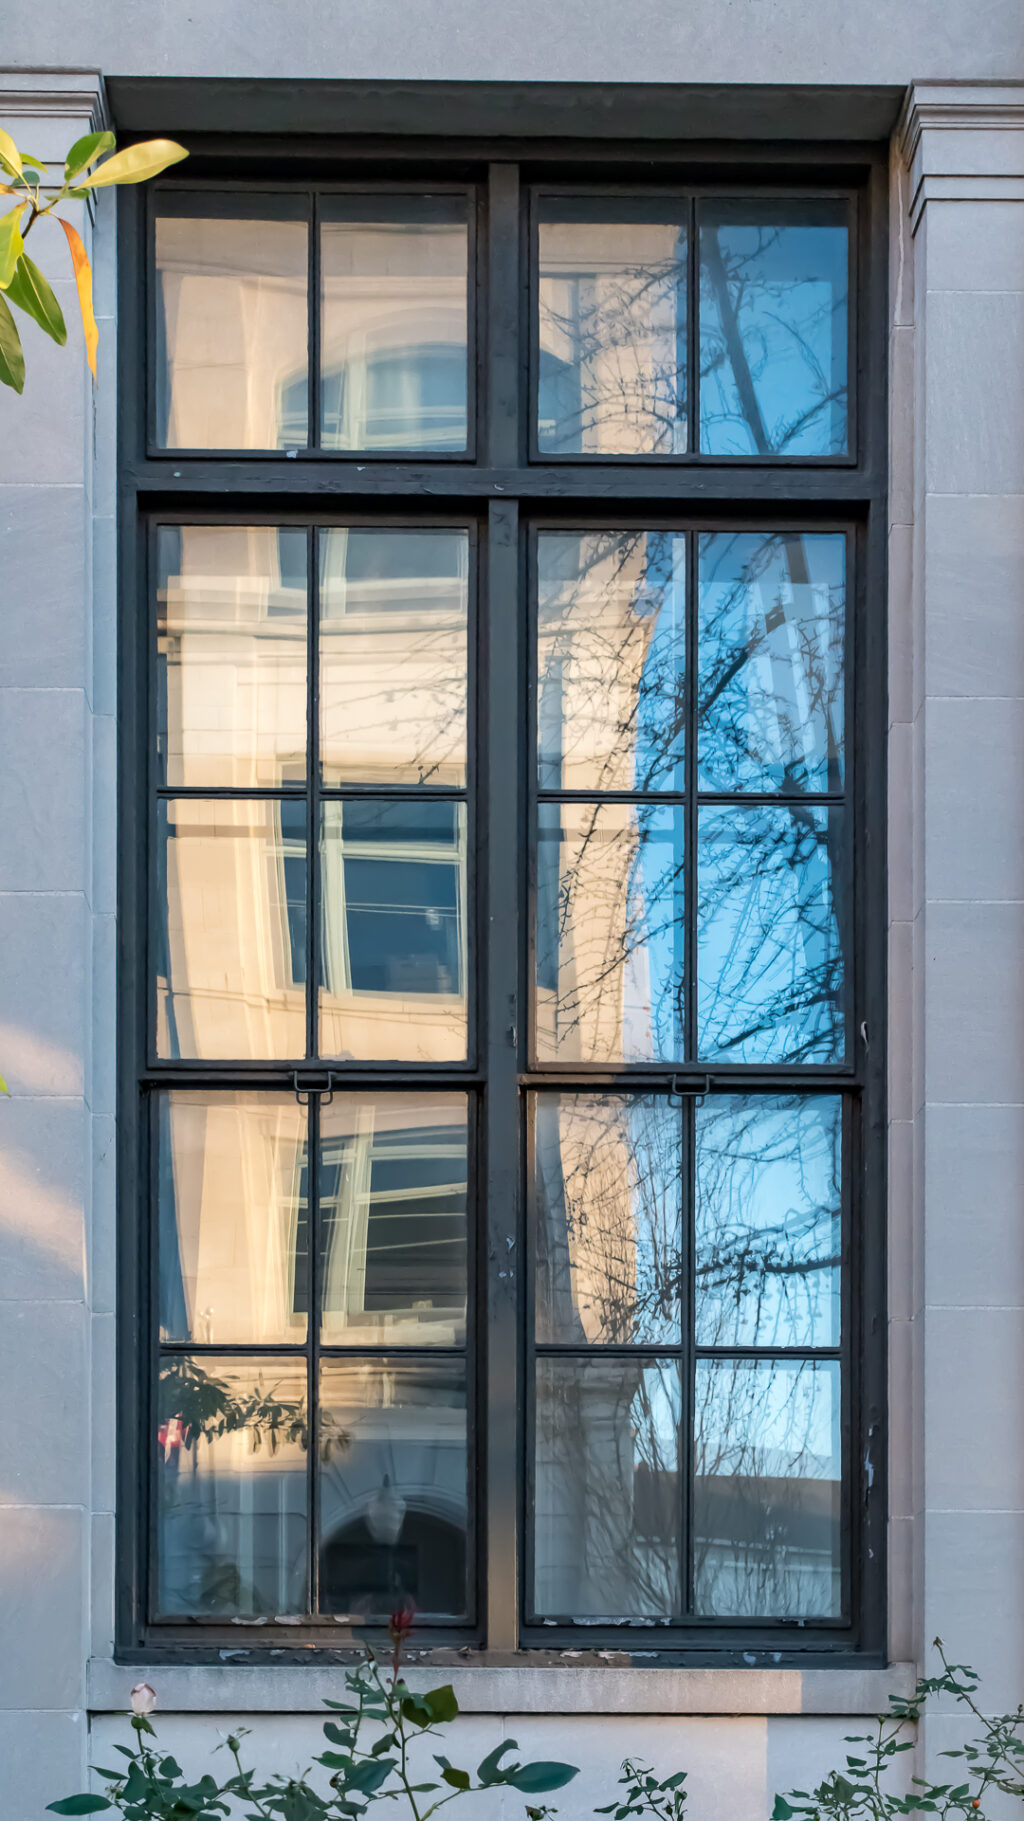 Window with reflections